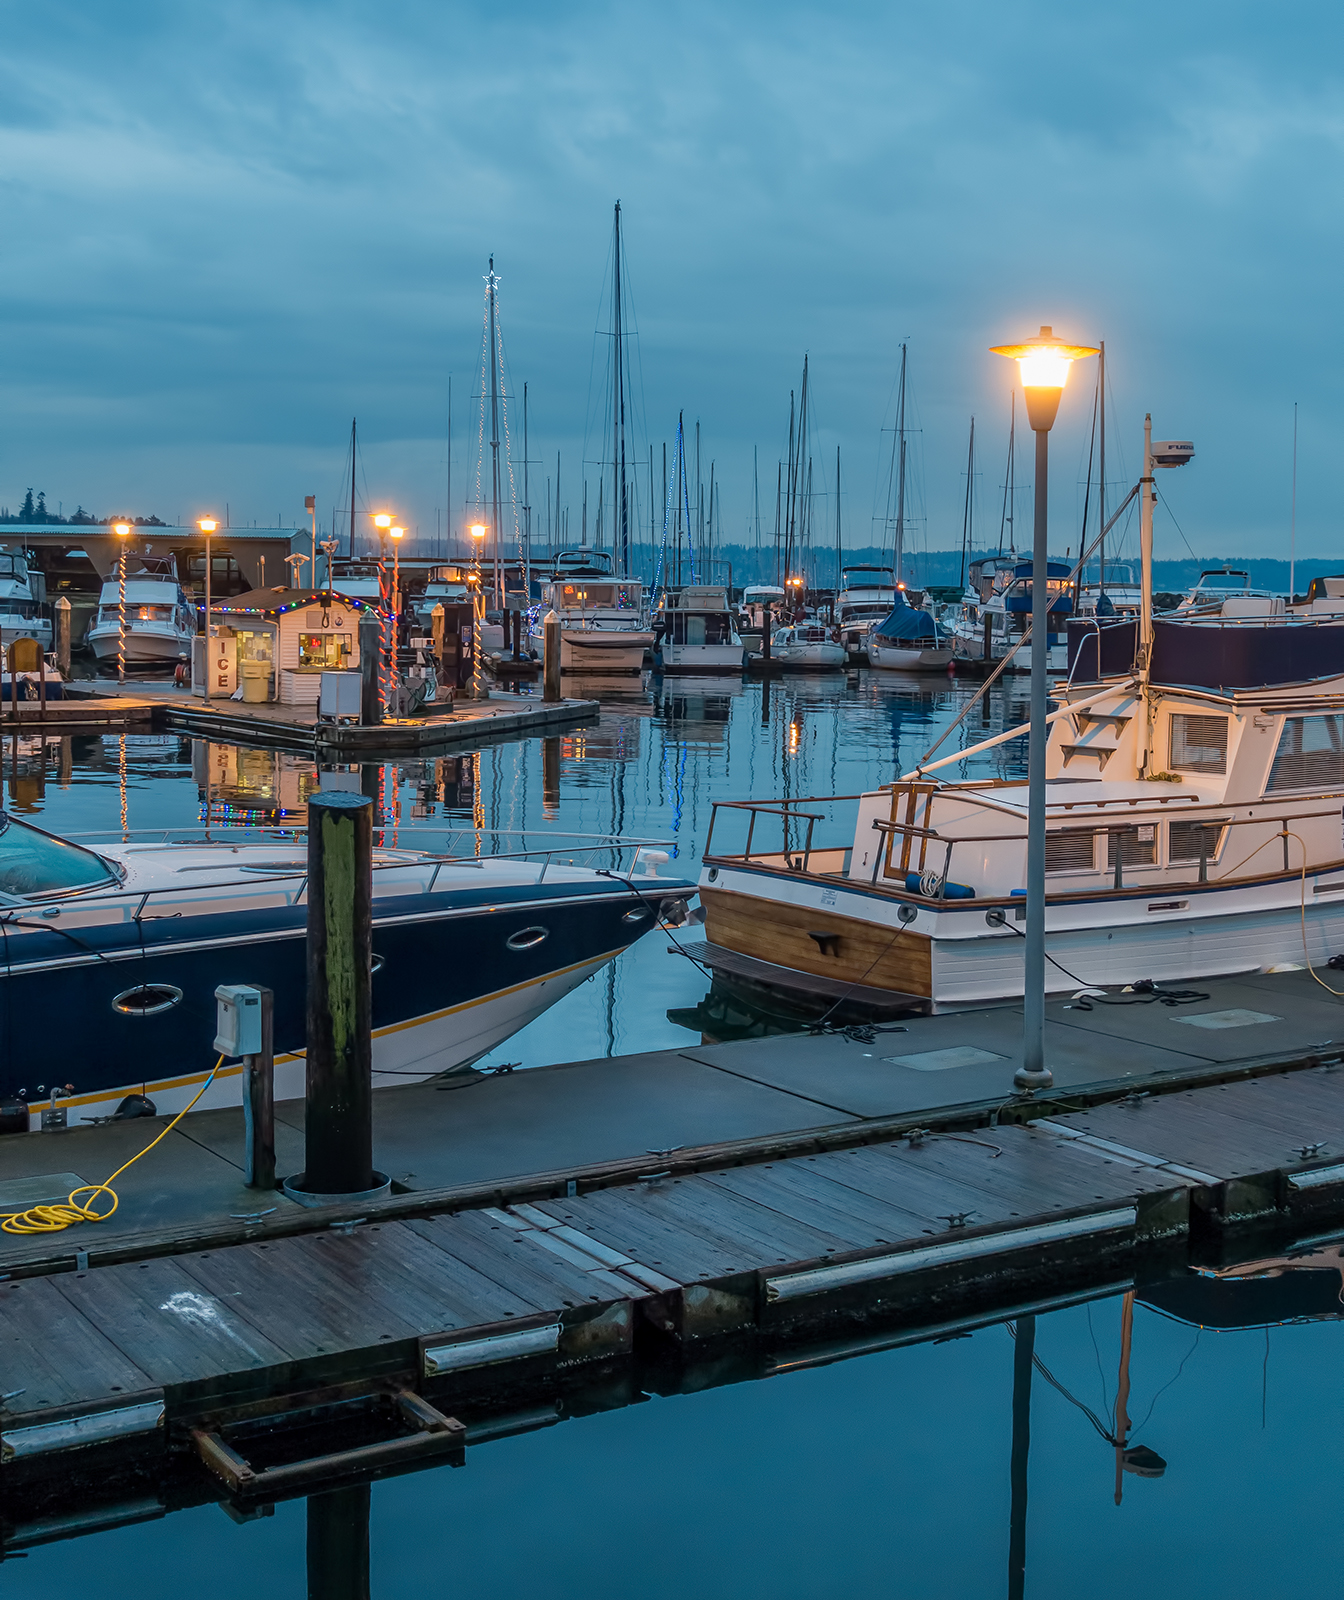 boats-marina-washington